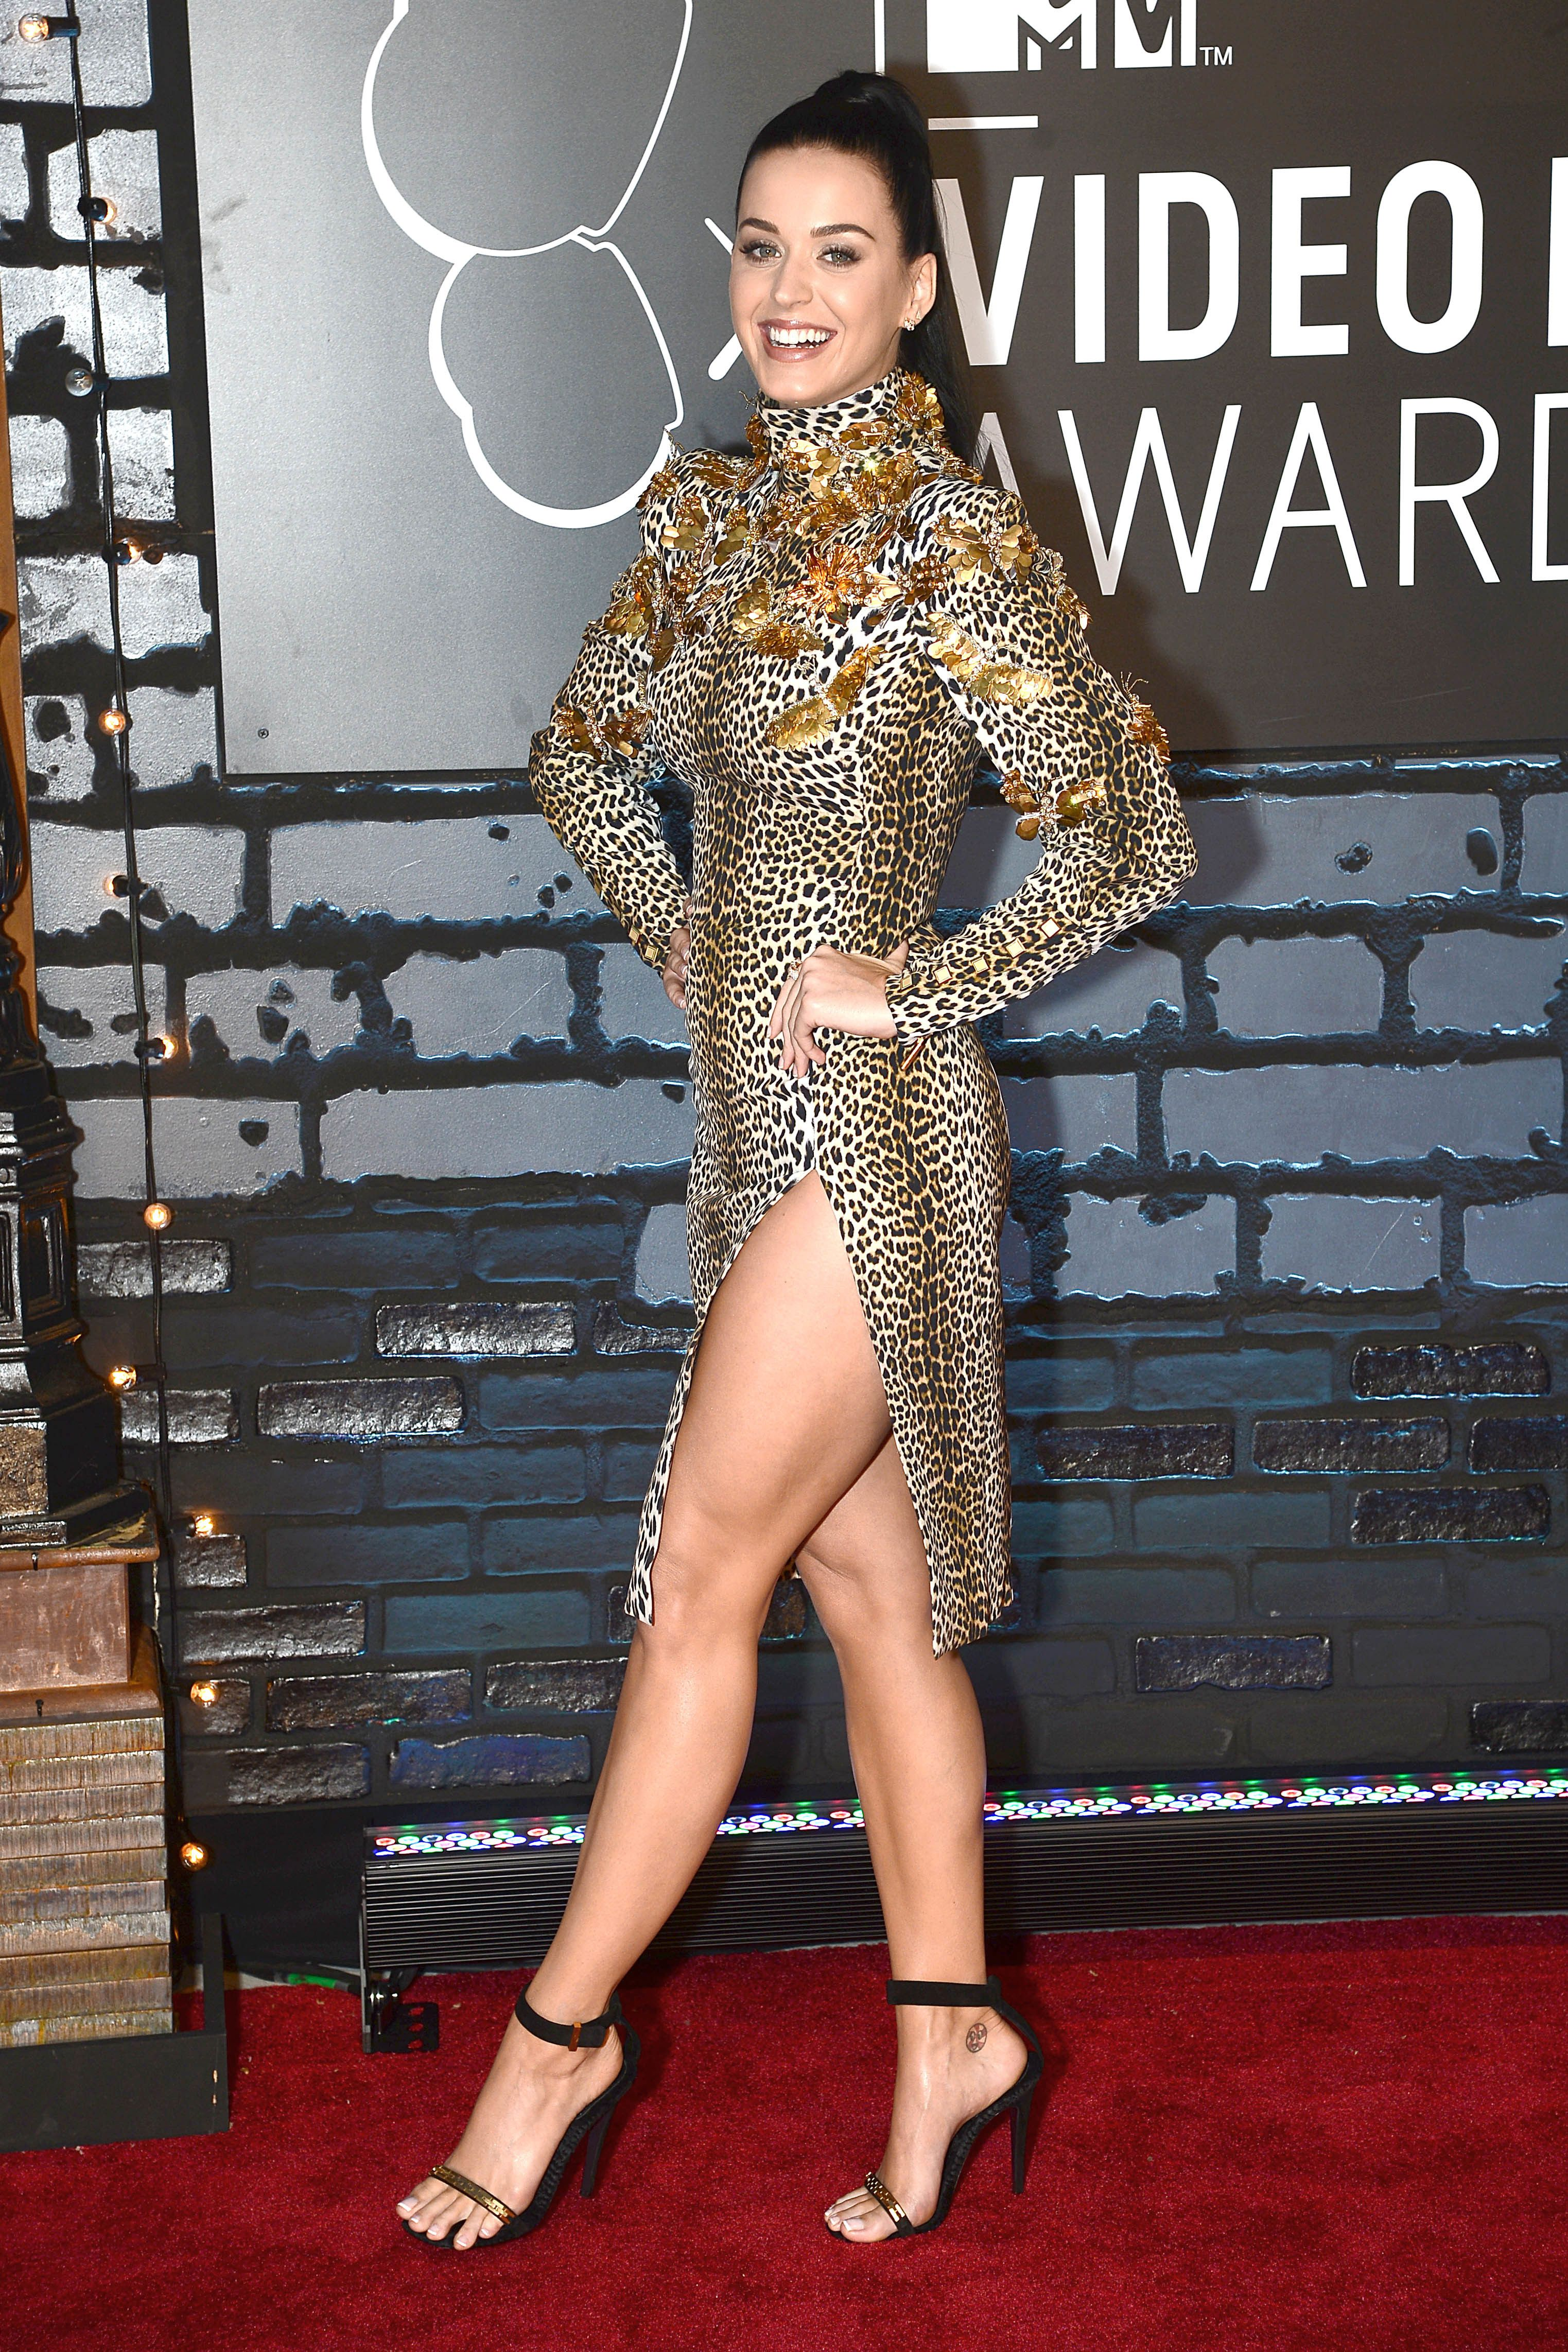 Katy Perry, Legs special... - Album on Imgur | Katy | Pinterest ...